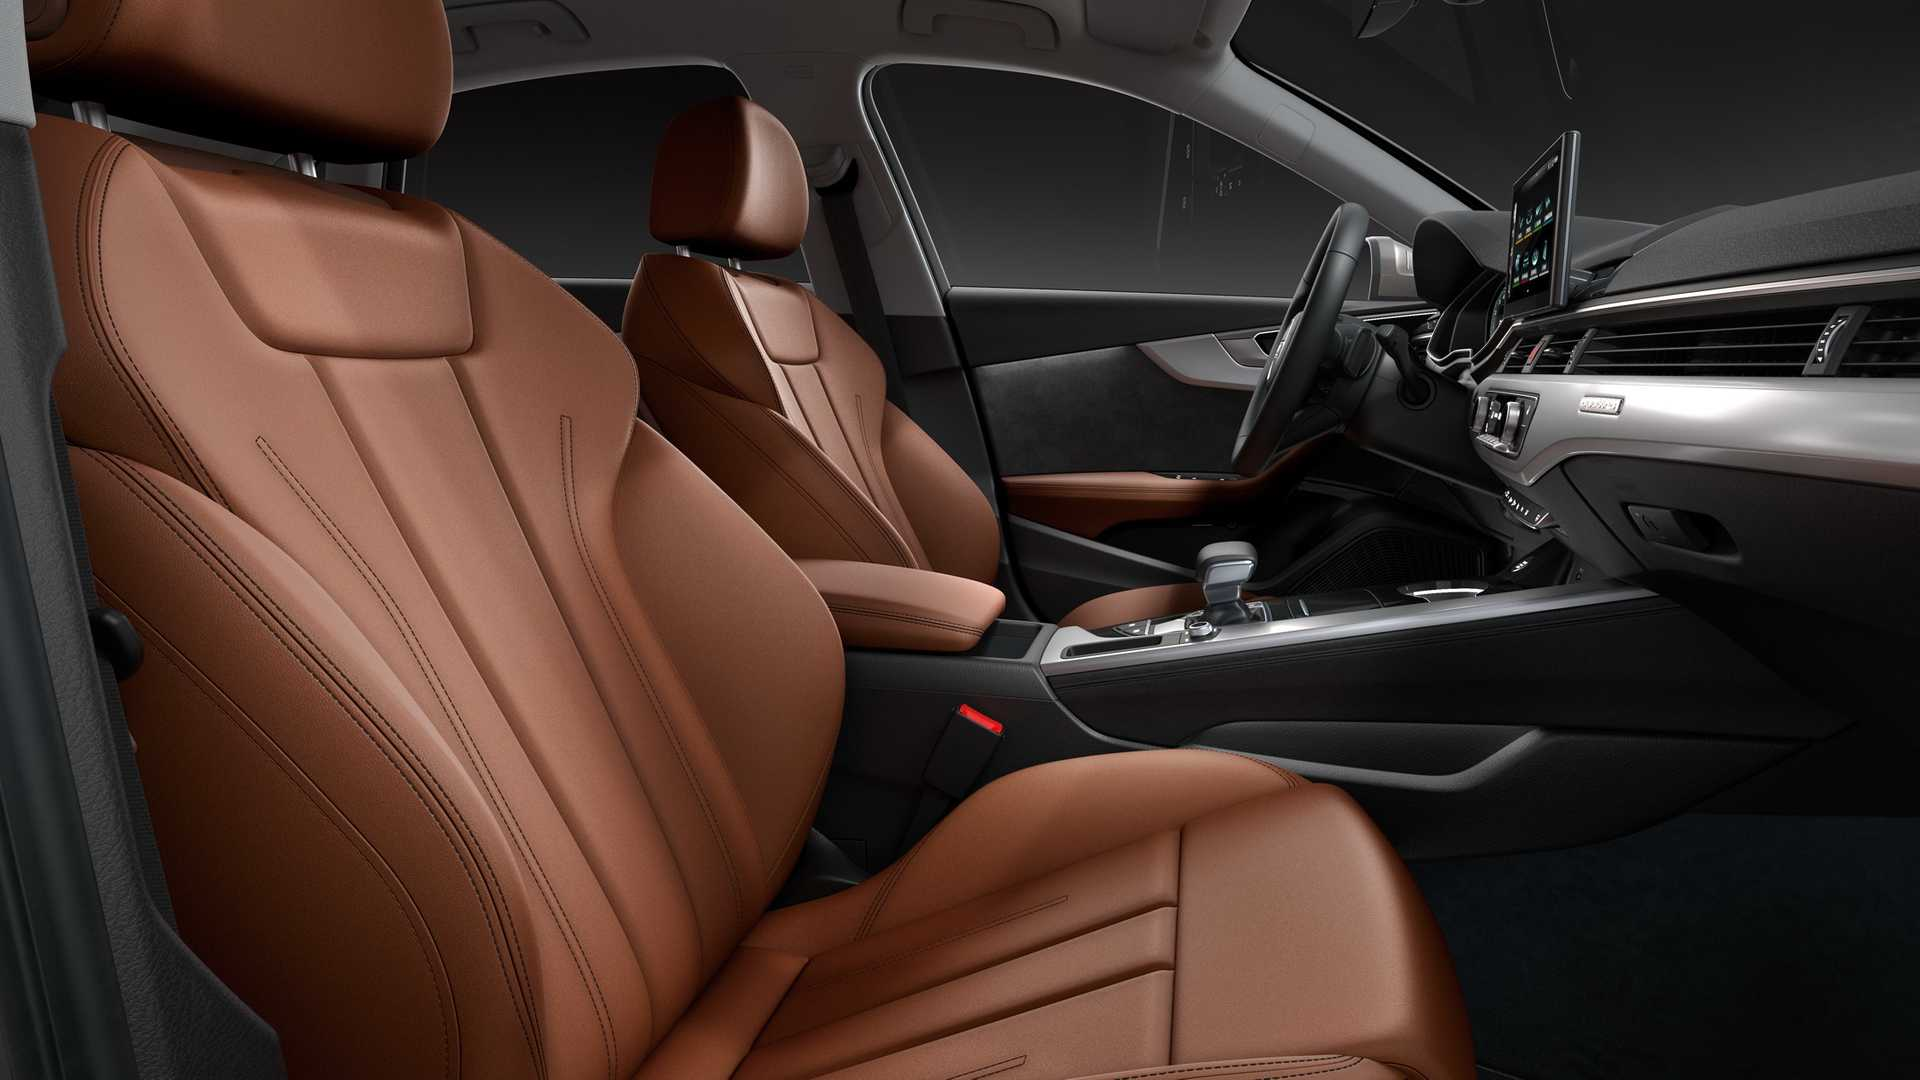 2020 Audi A4 Interior Front Seats Wallpapers (9)